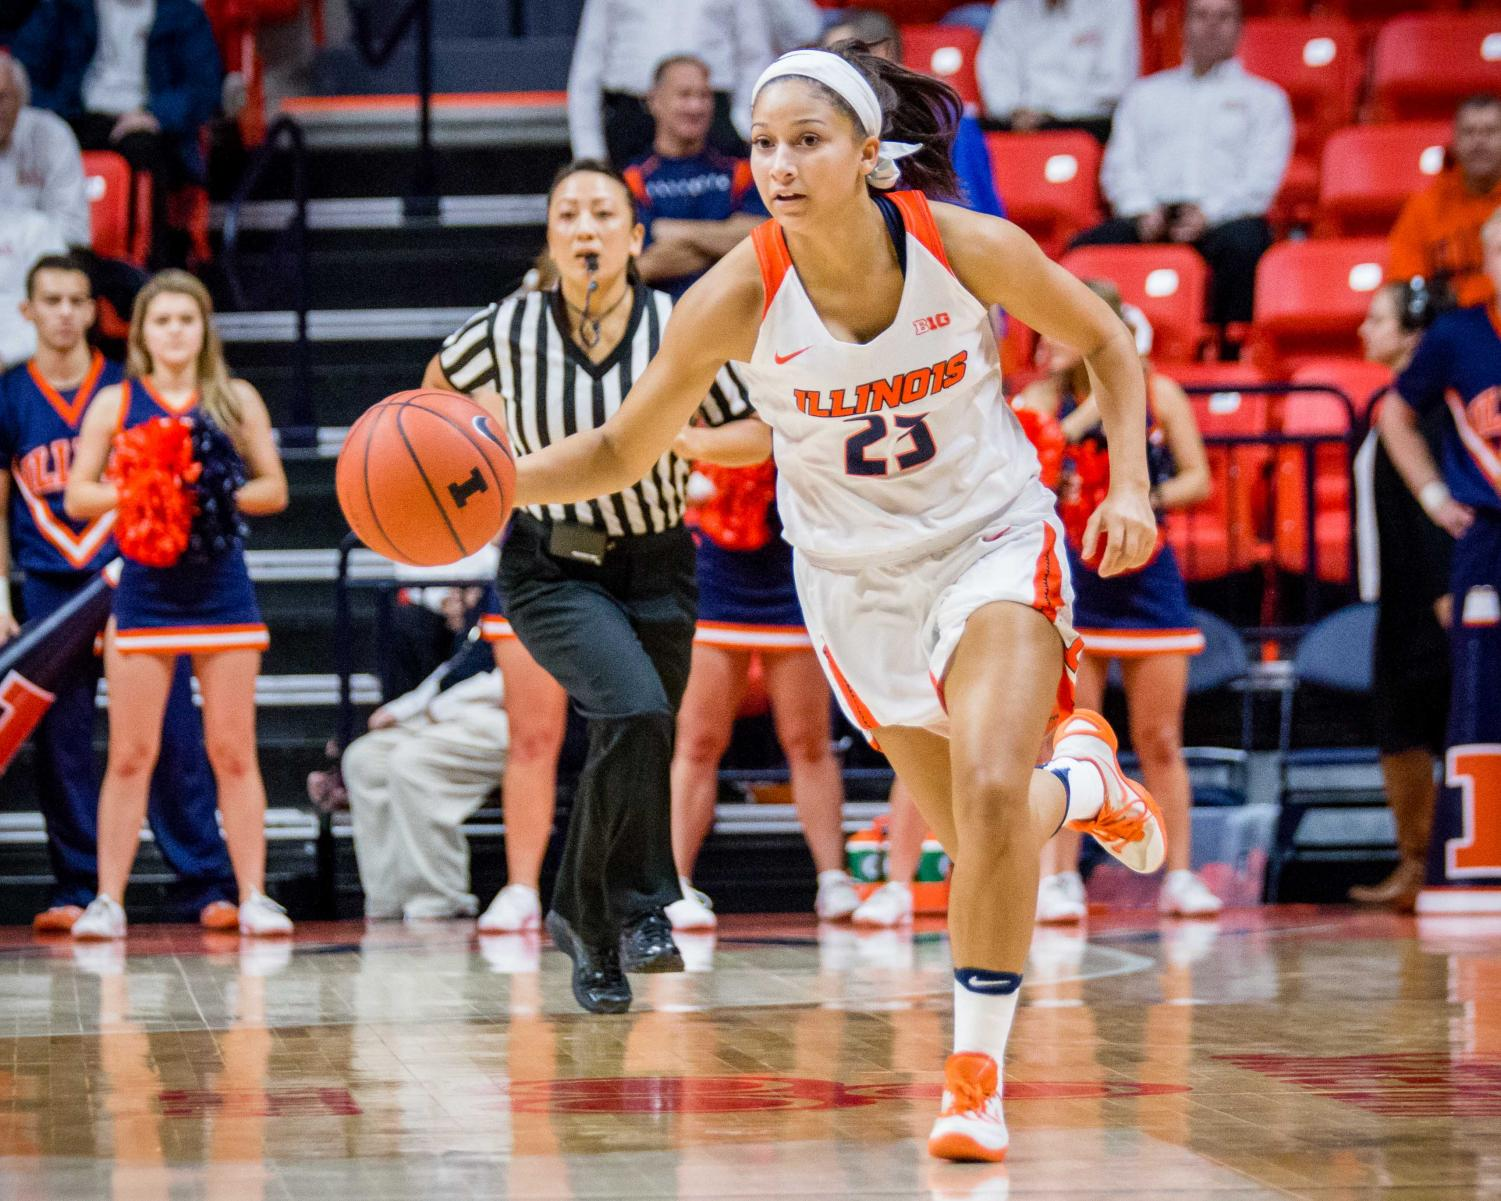 Illinois' Jaelyne Kirkpatrick dribbles the ball down the court against Wake Forest on Nov. 30. The team opens its regular season this Friday against Fort Wayne.